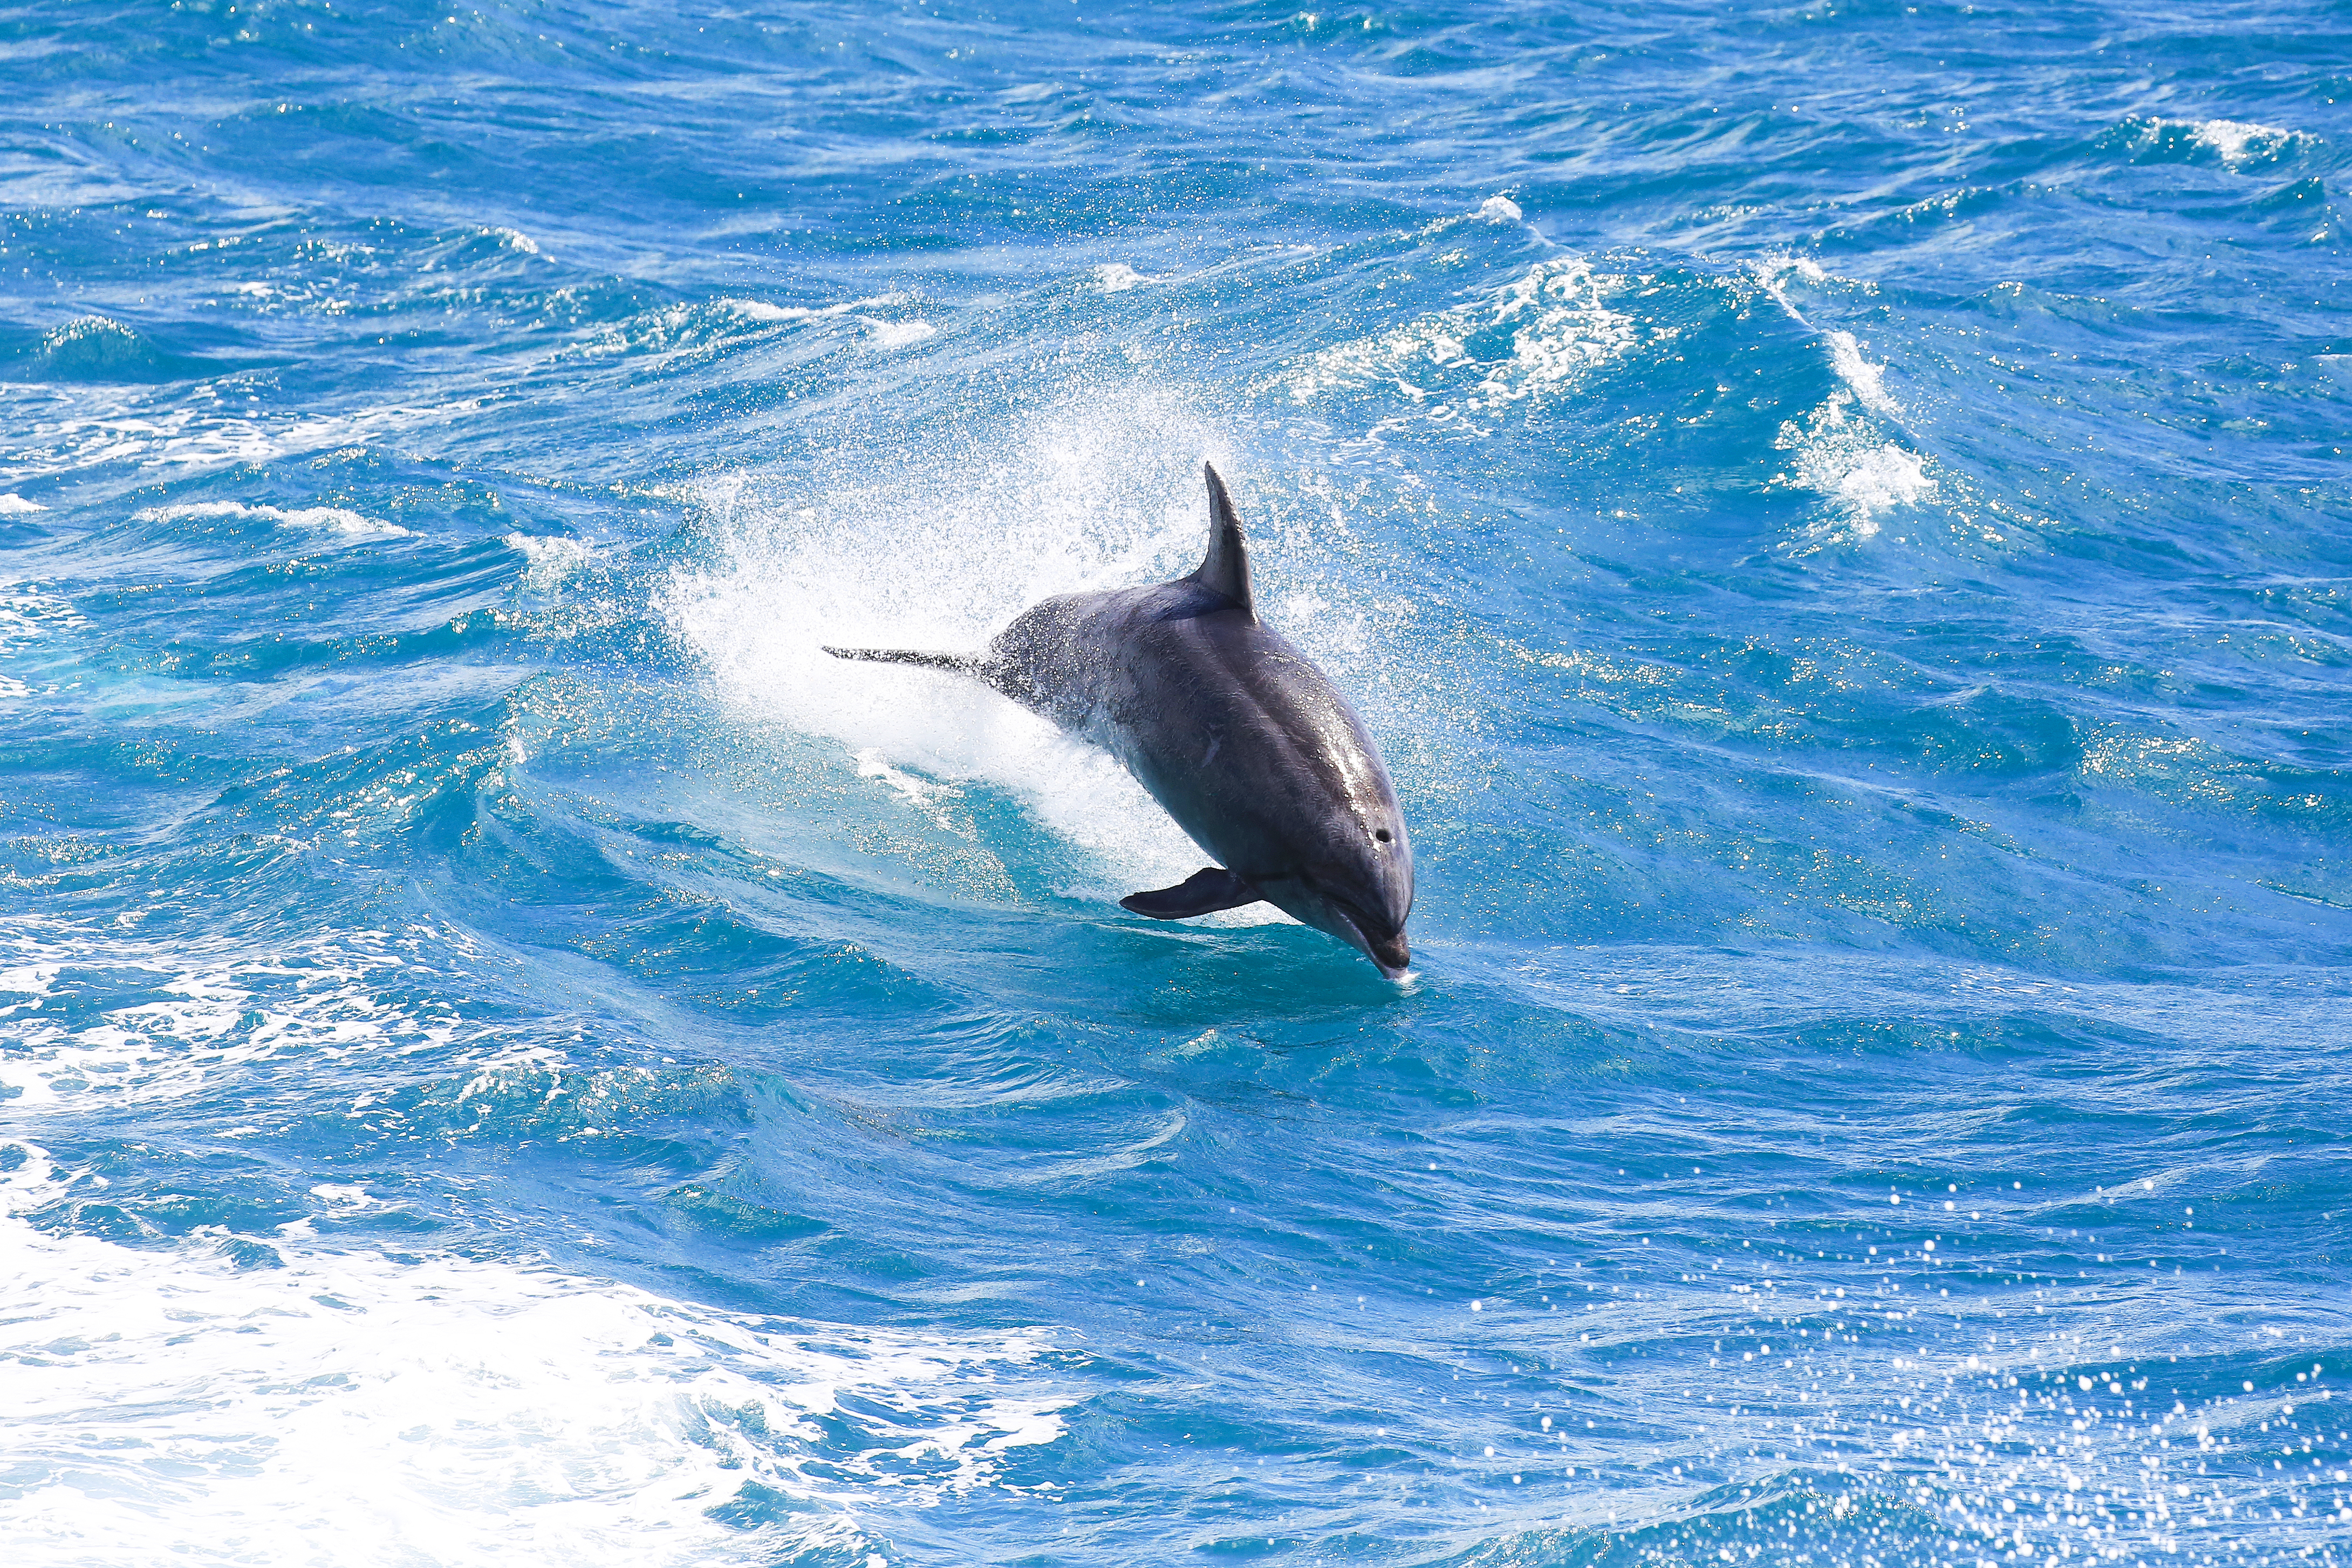 Bottlenose dolphin in Bay of Islands, New Zealand